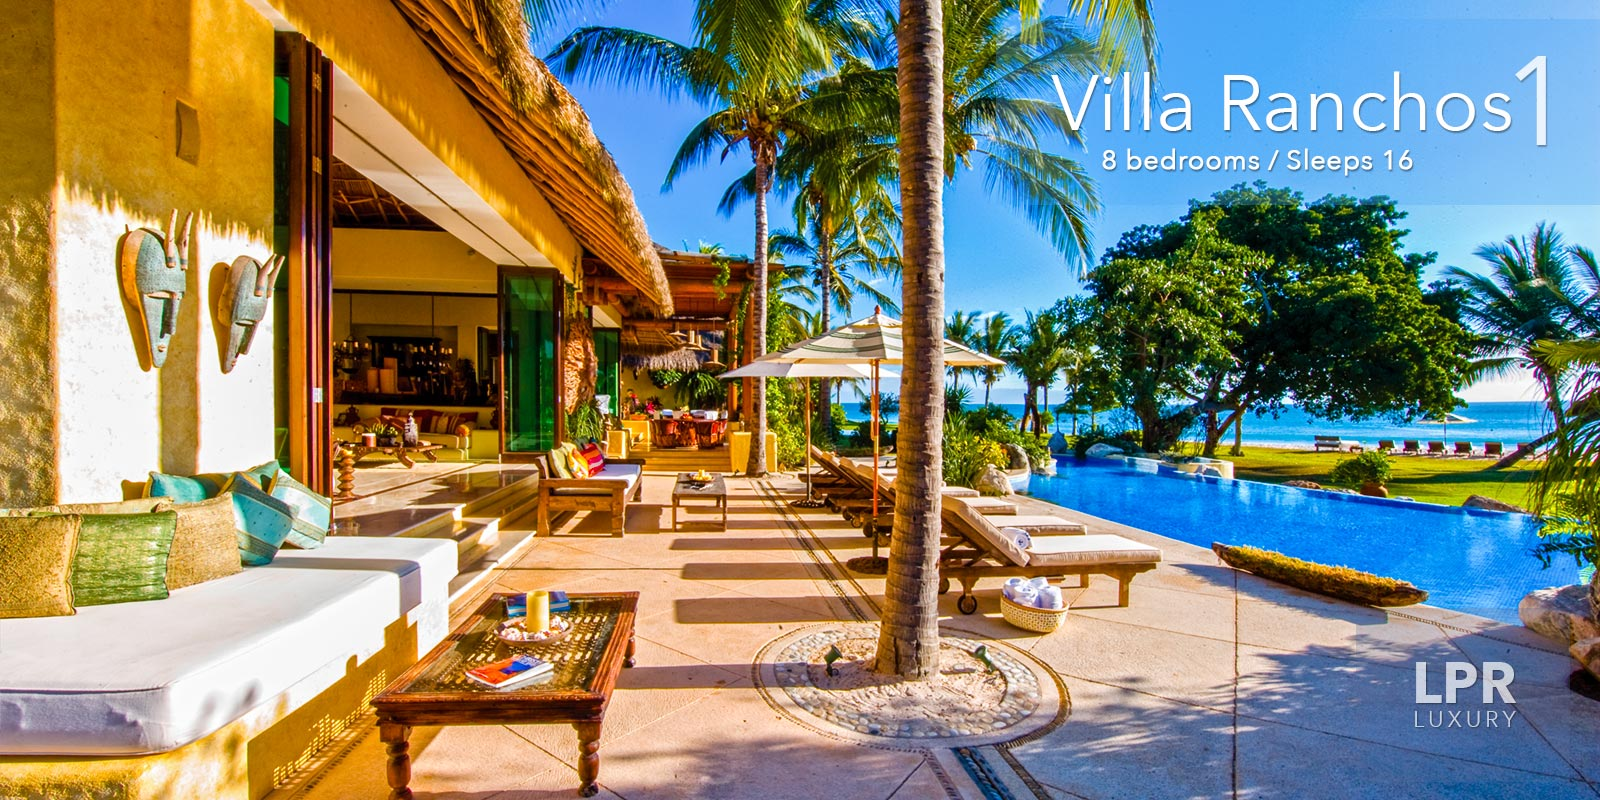 Villa Ranchos 1 Is Your Own Five Star Resort On The Finest Beach At Most